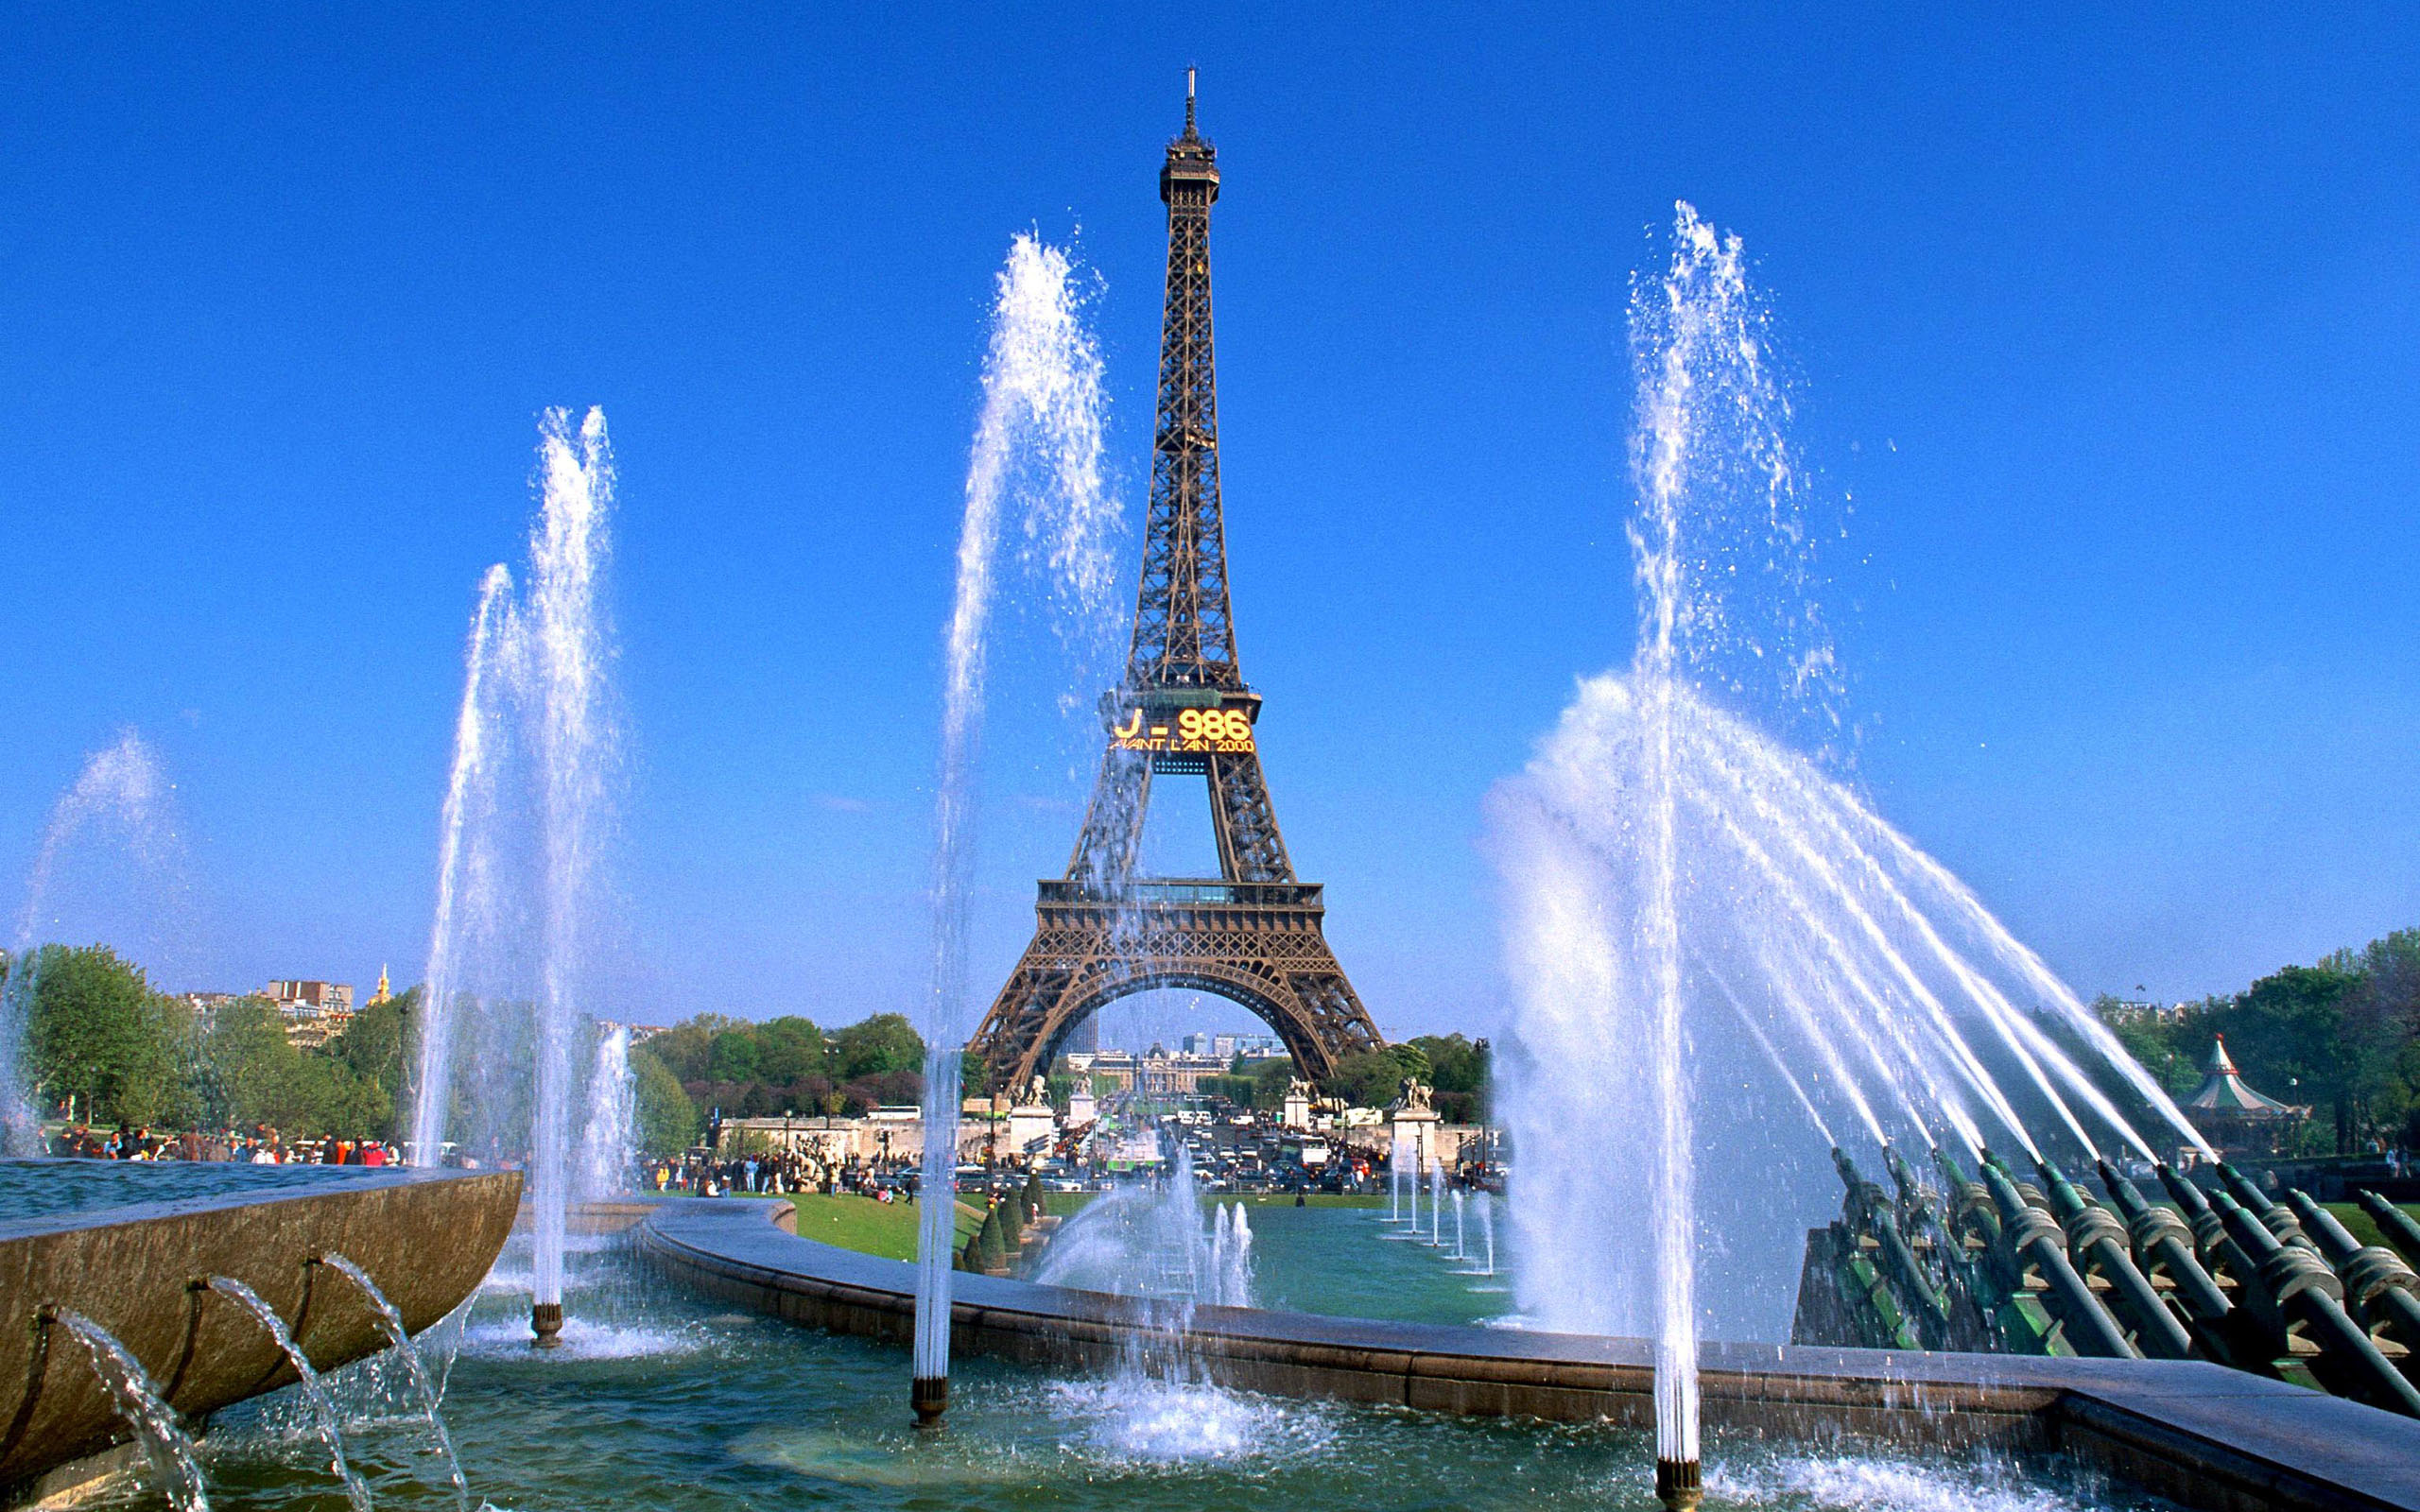 Tour Eiffel de Paris Wallpapers fond dcran photos en HD 2560x1600